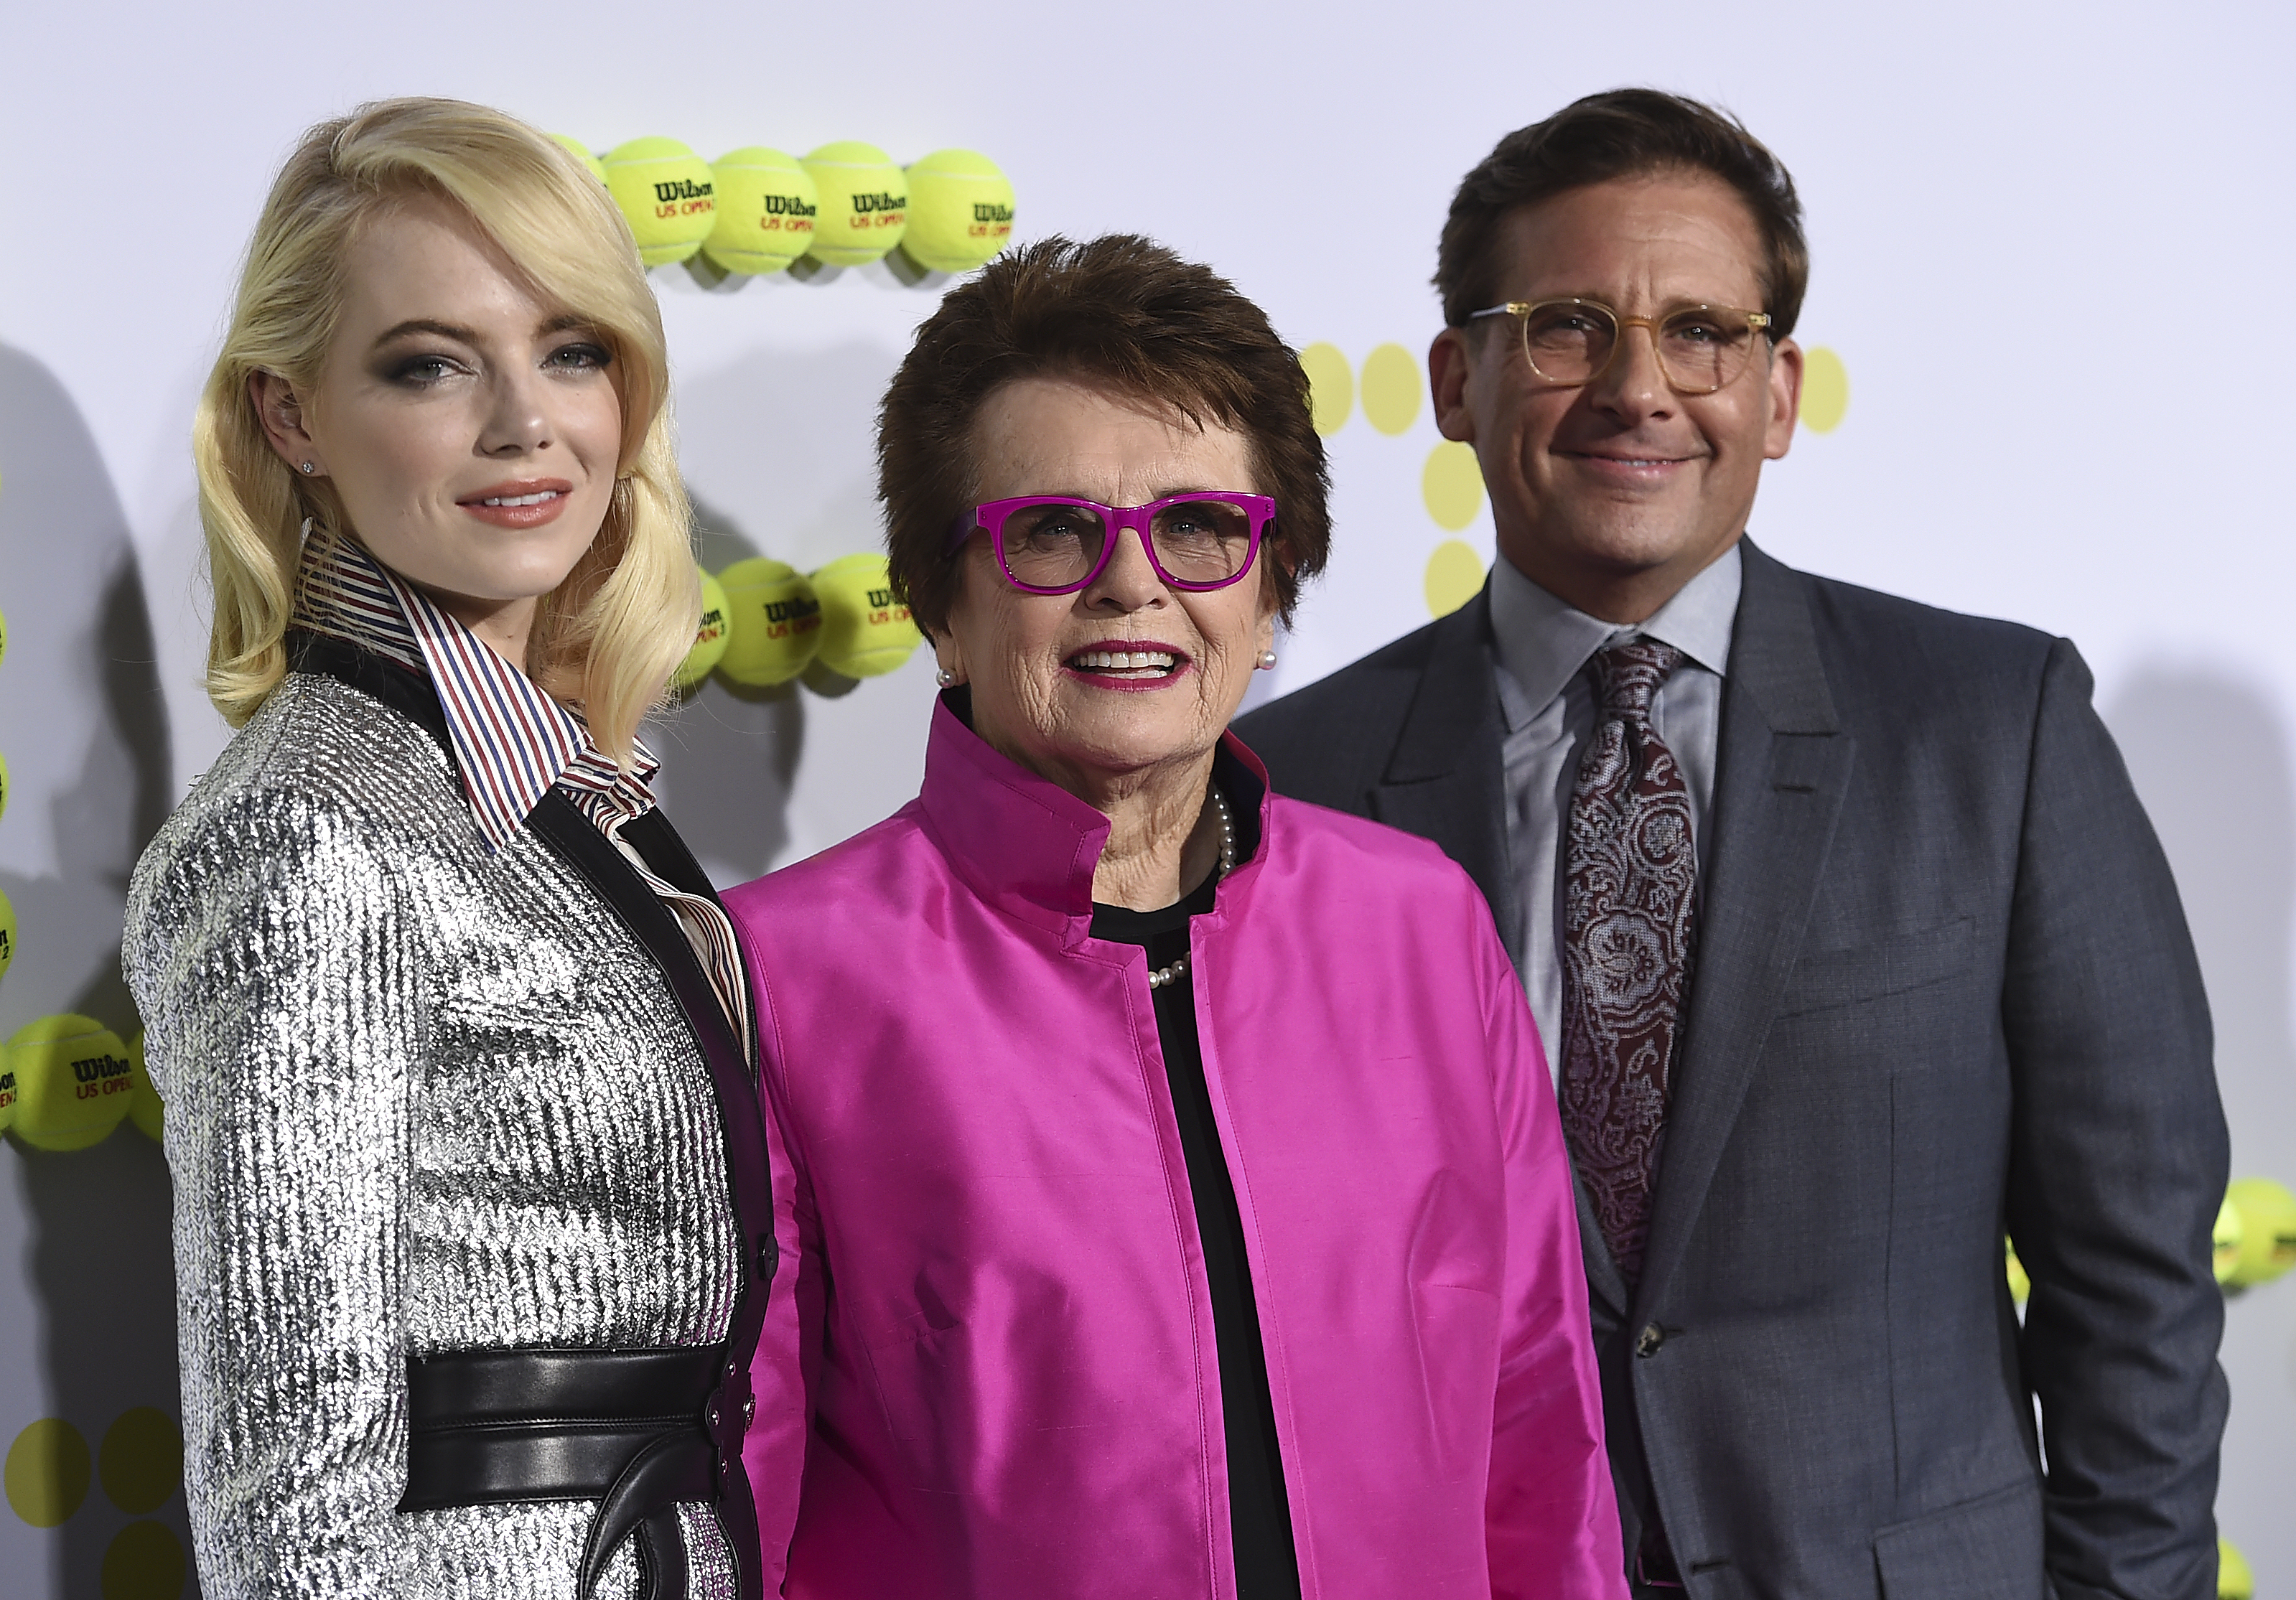 Emma Stone, from left, tennis great Billie Jean King and Steve Carell arrive at the Los Angeles premiere of